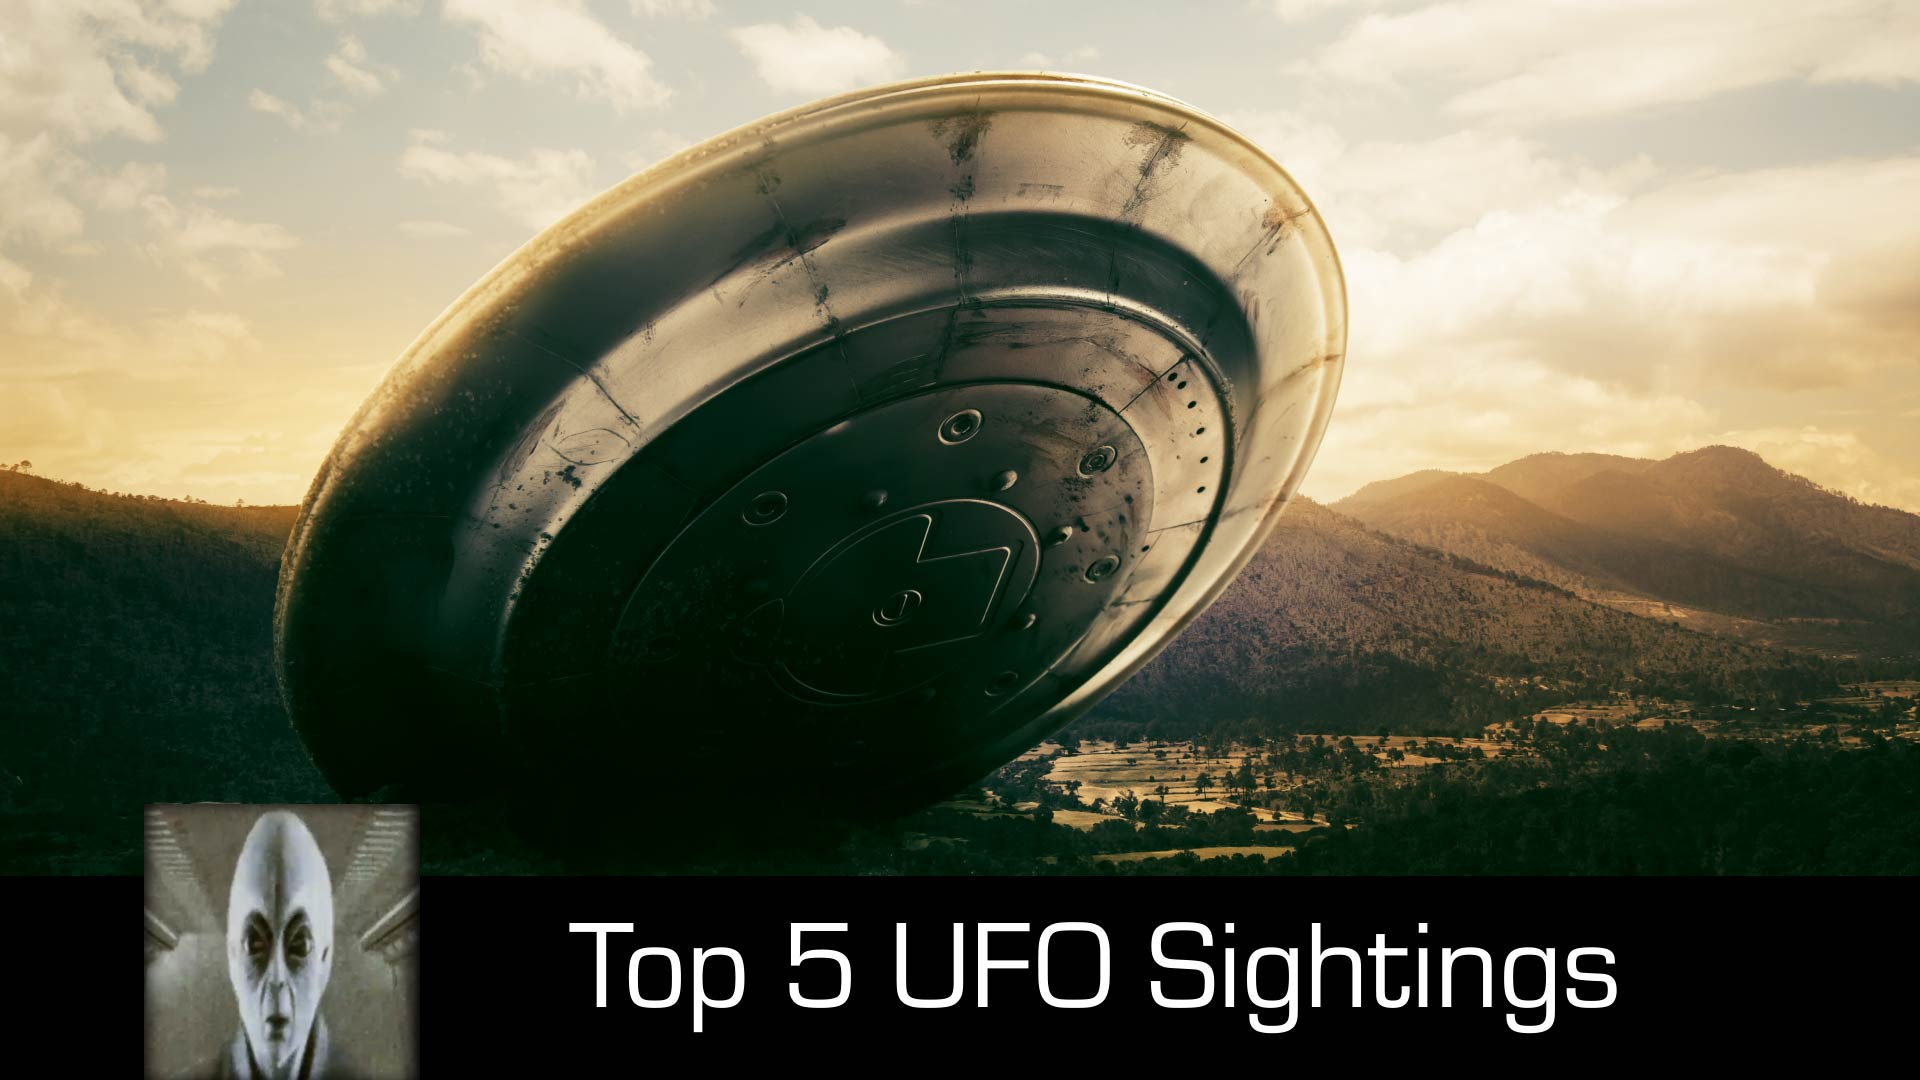 Top 5 UFO Sightings August 2018